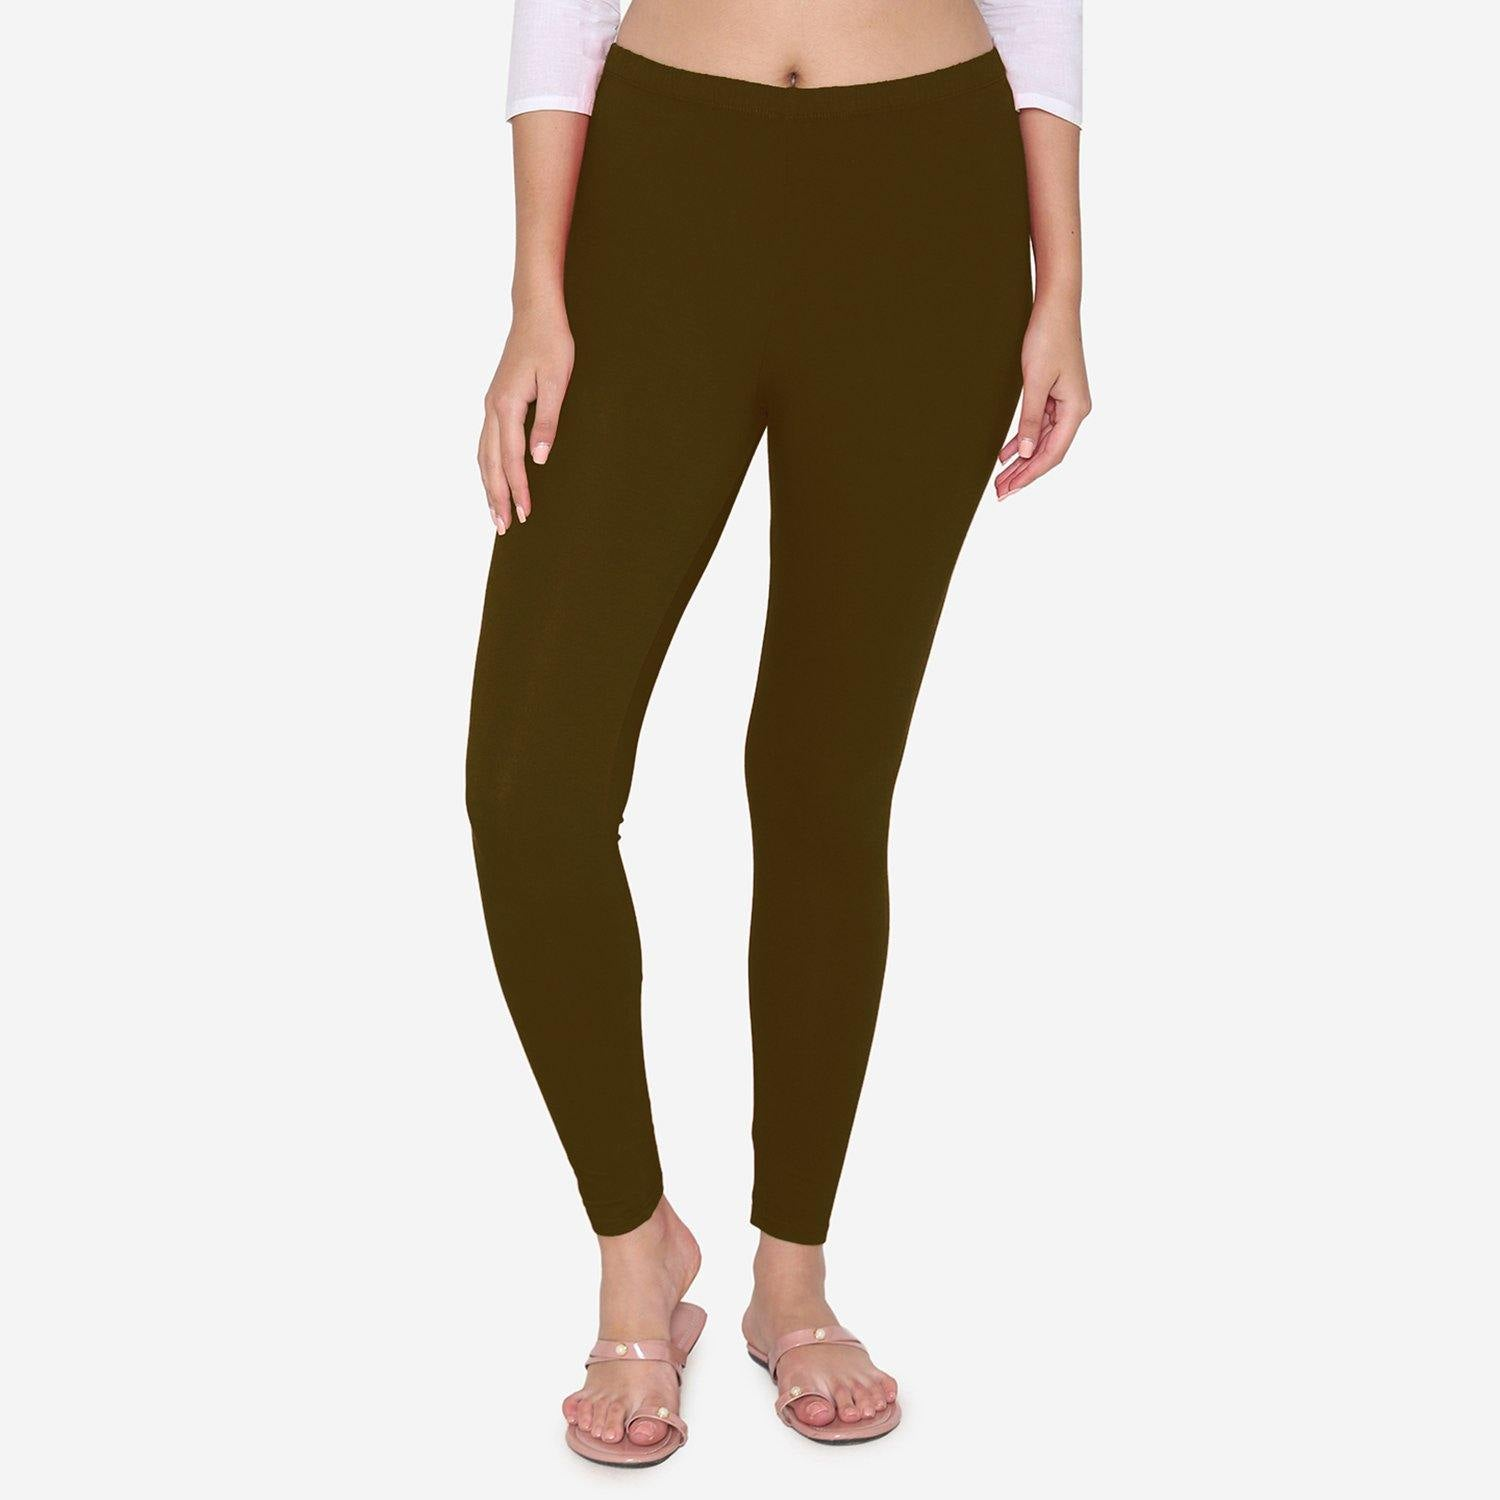 Women's Cotton Stretchable Ankle Leggings